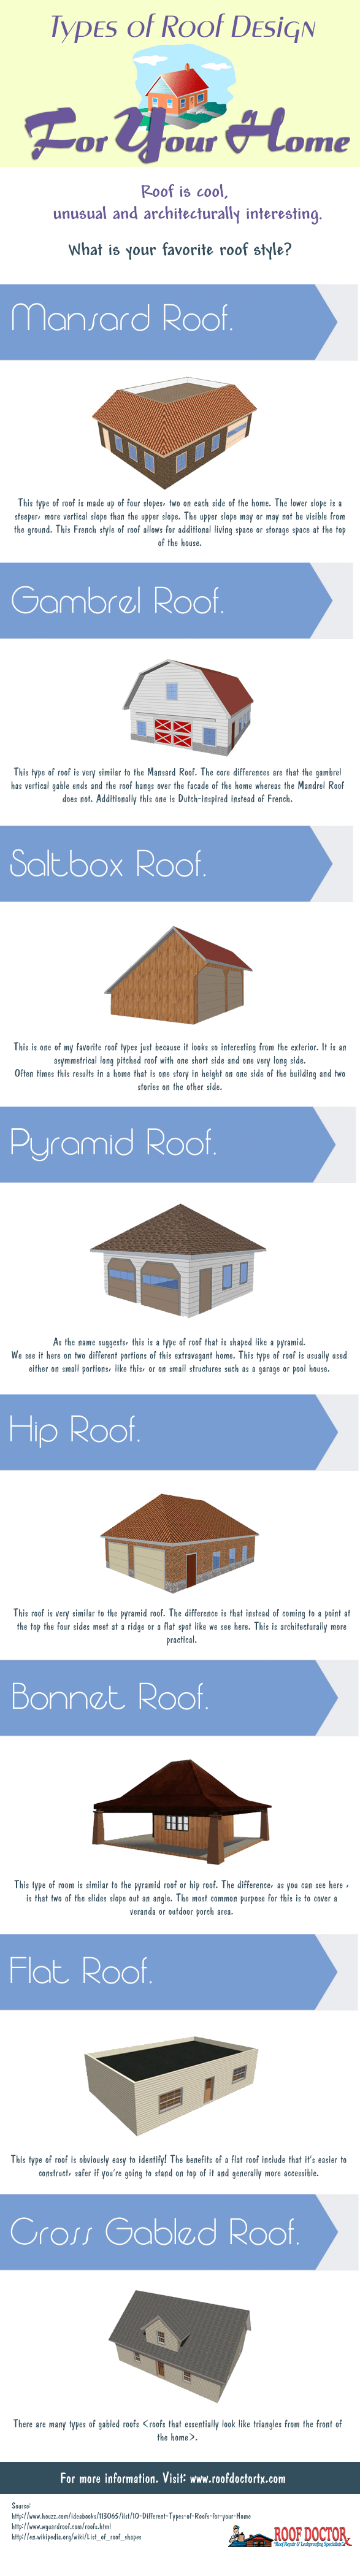 types-of-roof-design-for-your-home_52558e259f74c